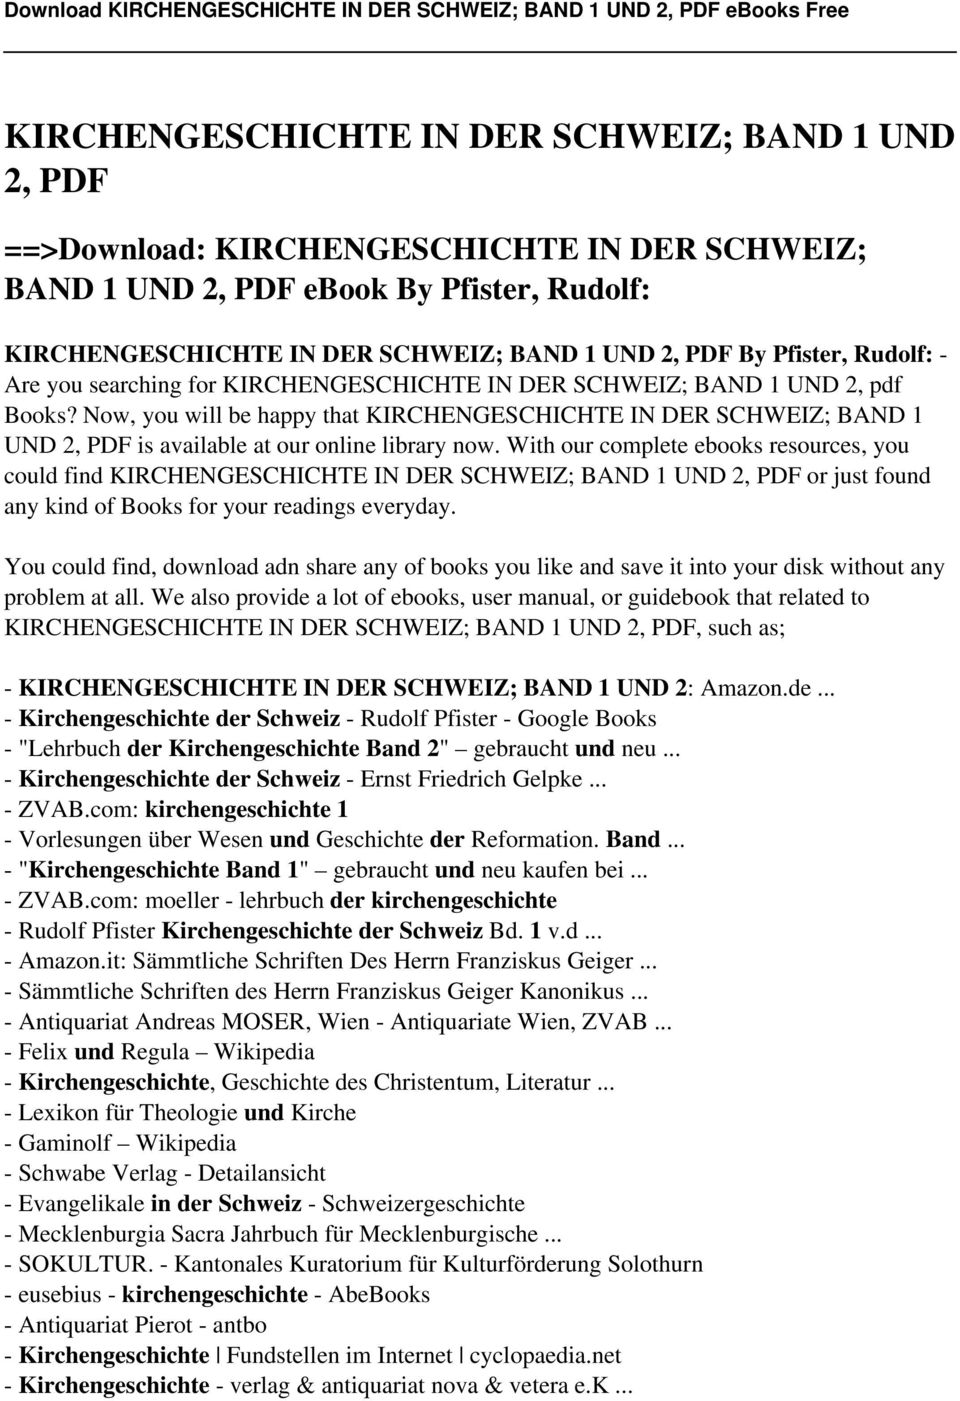 Now, you will be happy that KIRCHENGESCHICHTE IN DER SCHWEIZ; BAND 1 UND 2, PDF is available at our online library now.